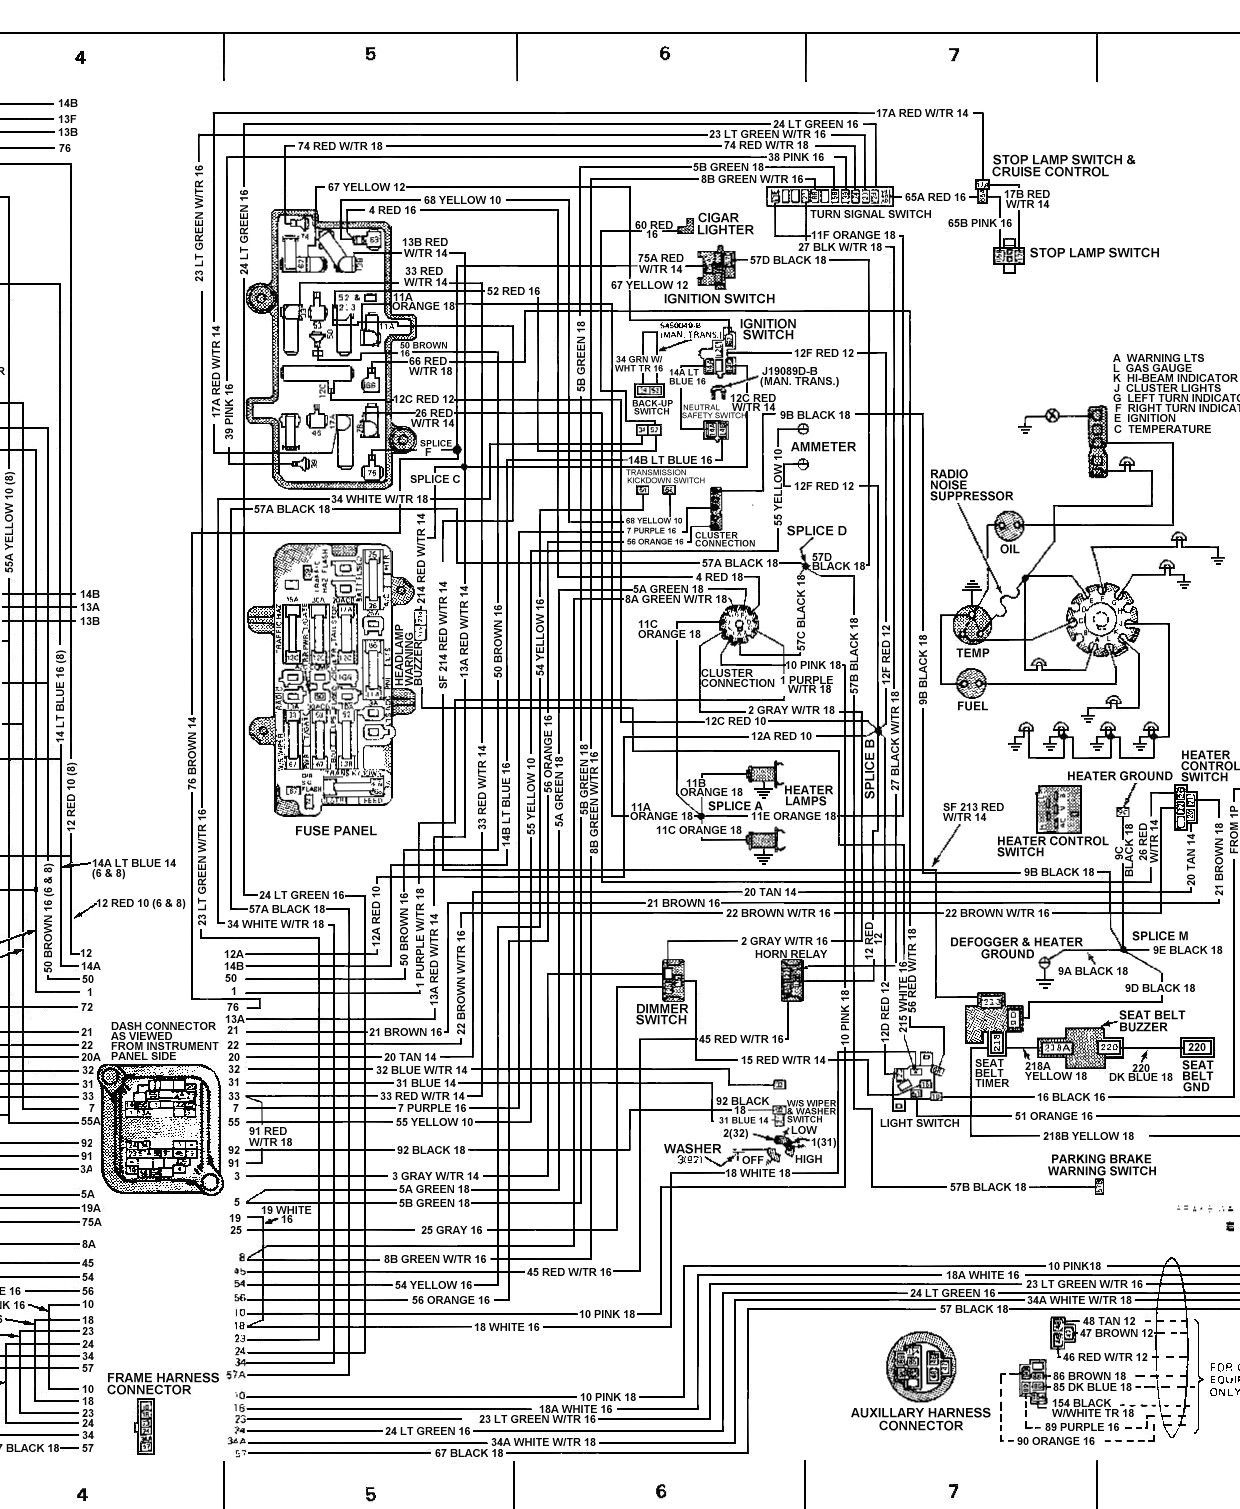 2004 Nissan Frontier Wiring Diagram Diagrams Schematics Best 2007 In At 2006 Vw Jetta Nissan Frontier Nissan